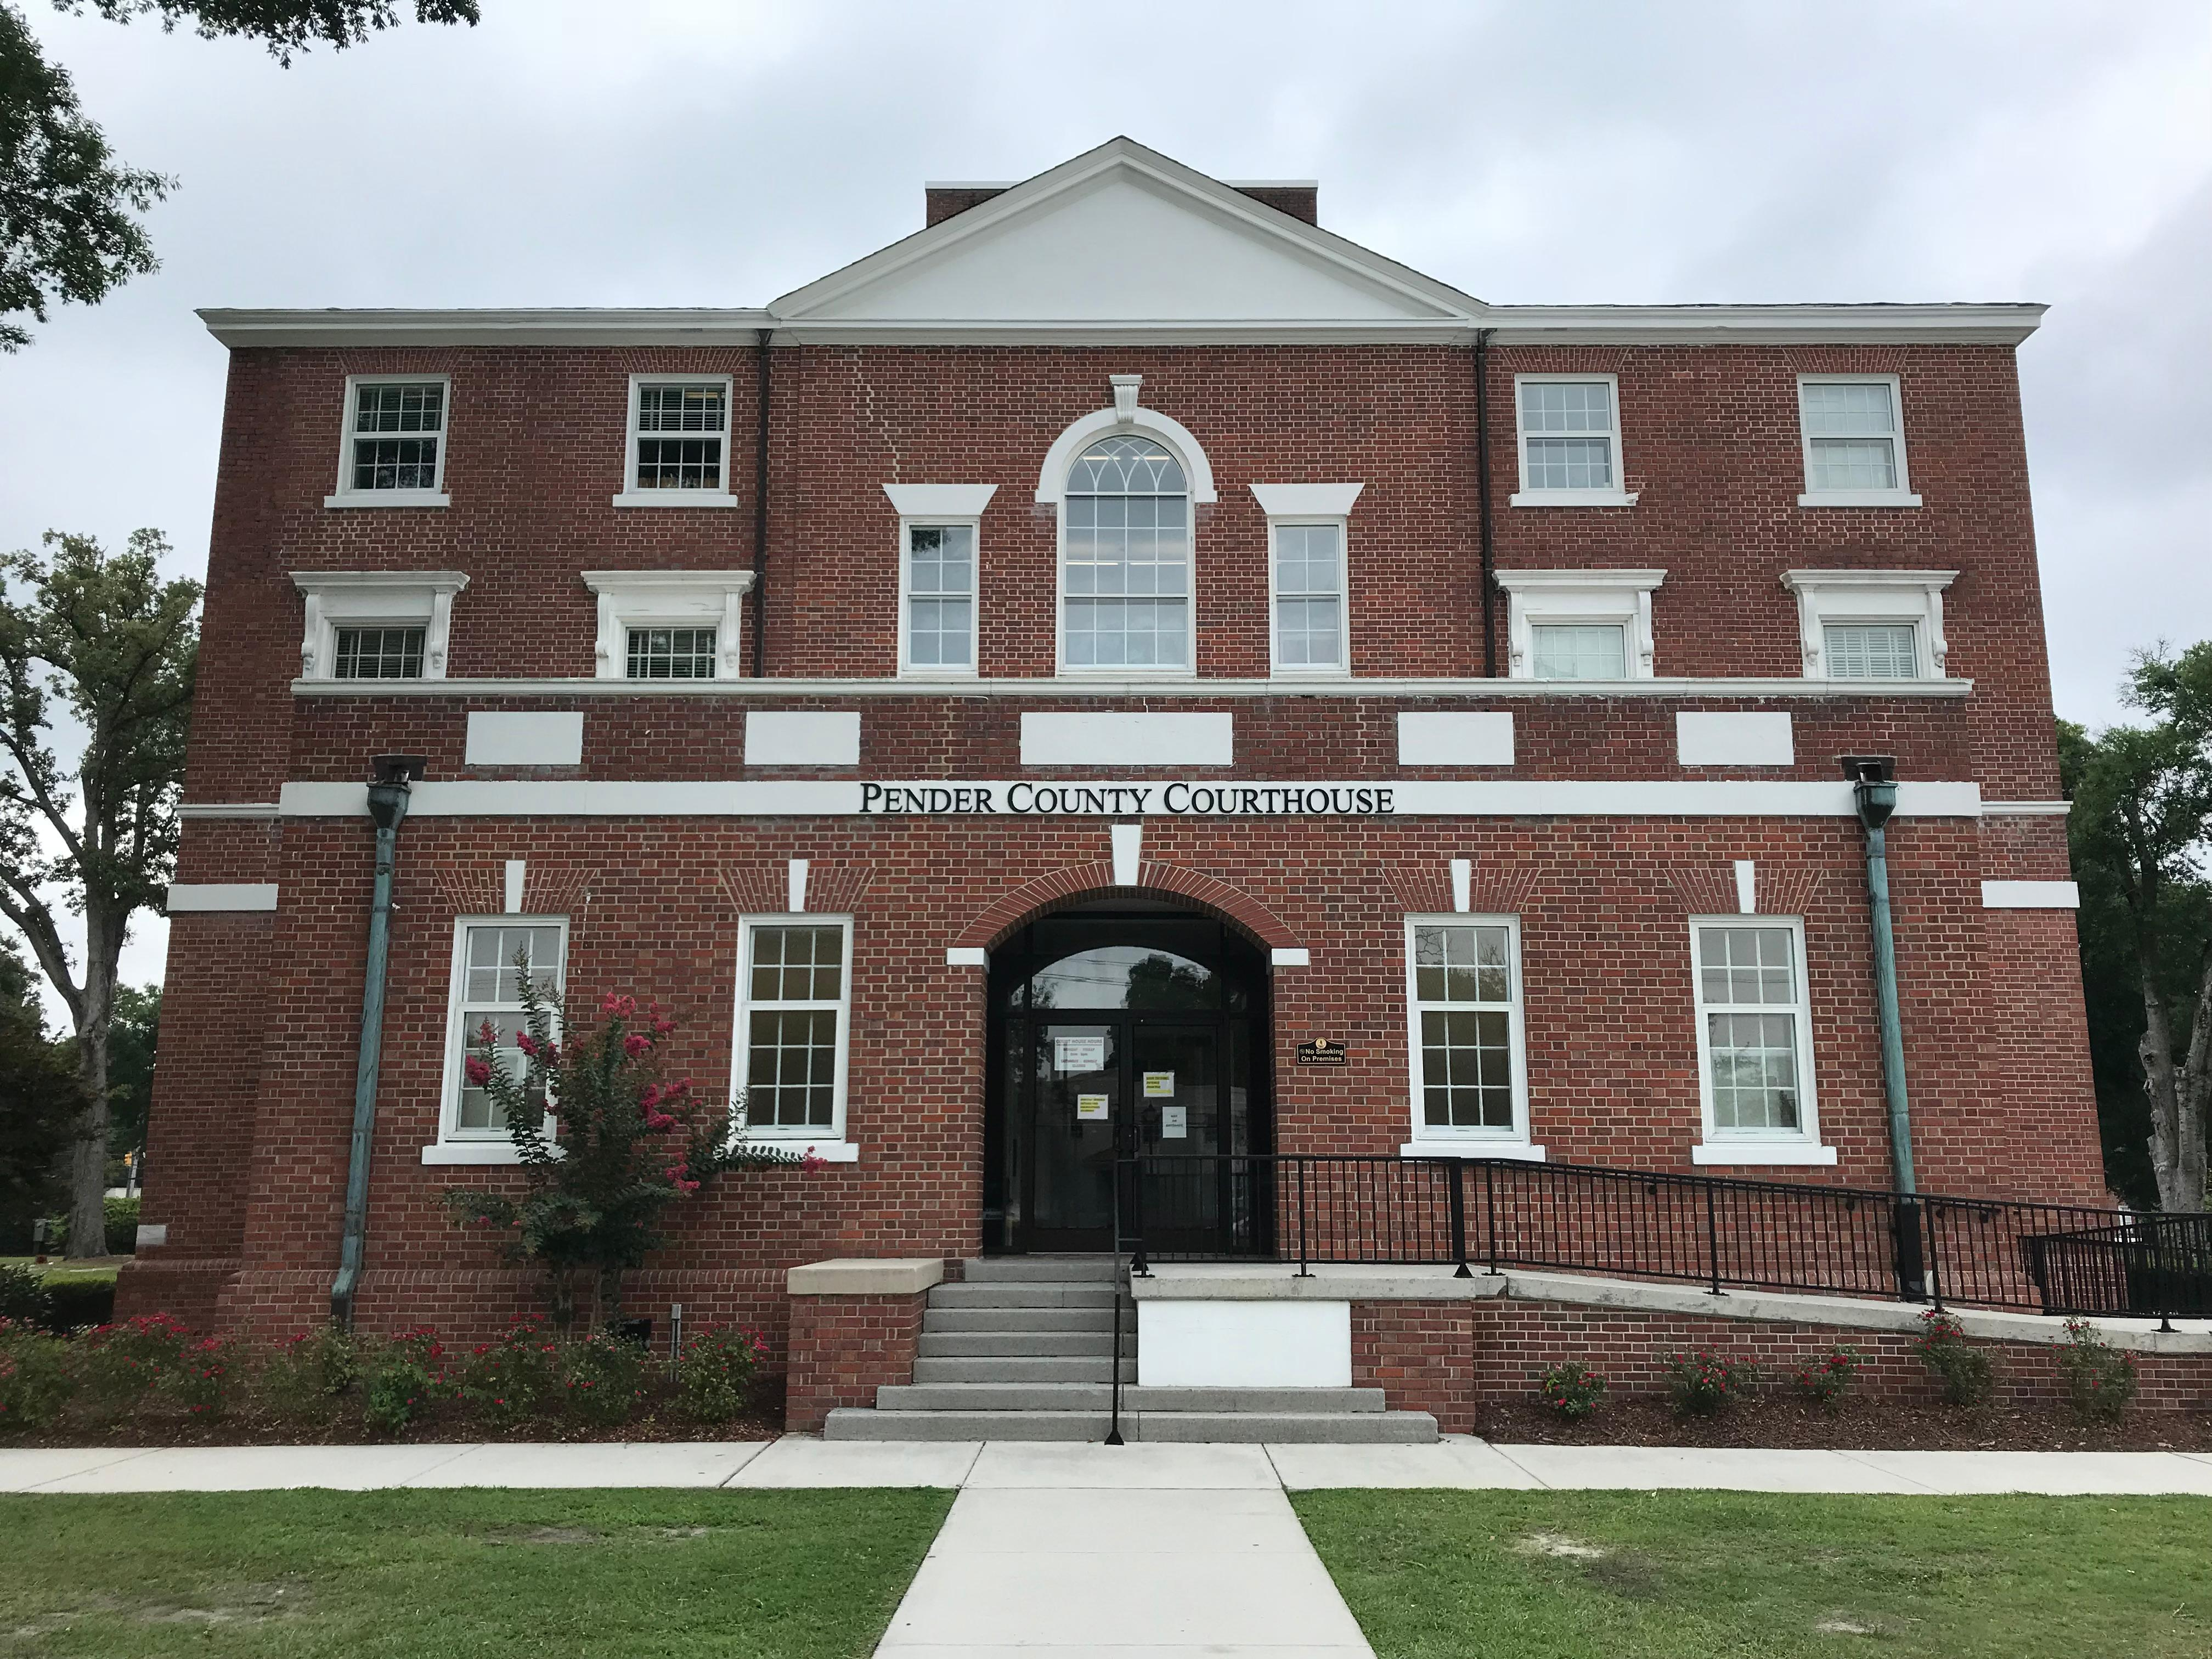 Pender County Courthouse